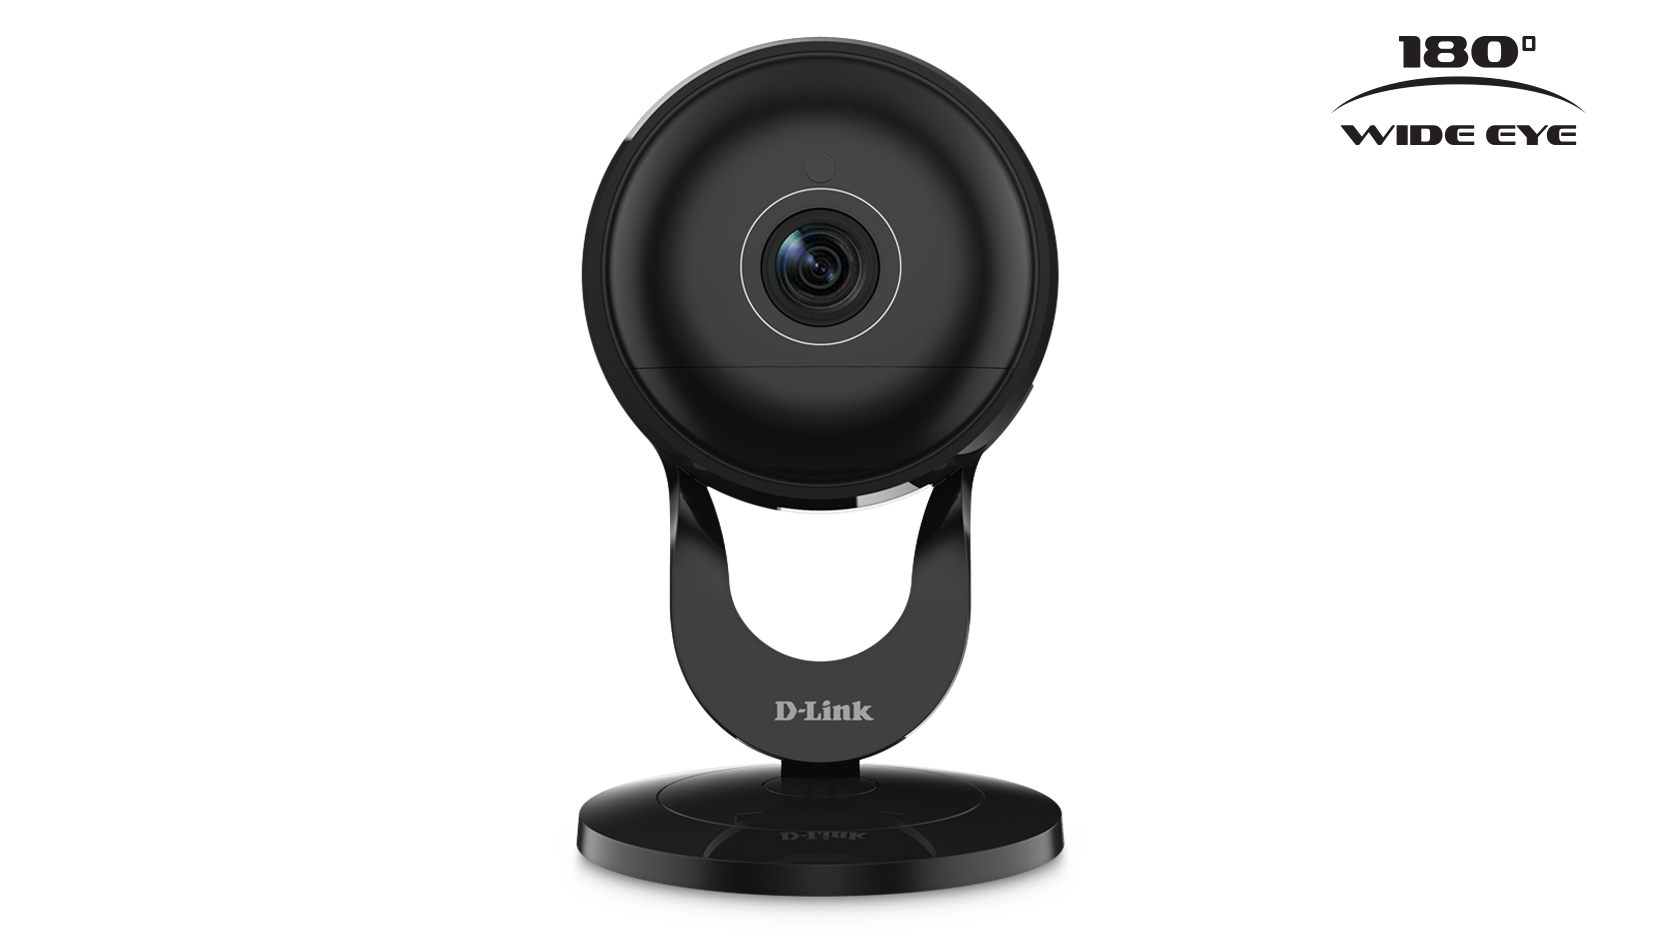 Buy USA D-Link Online Store International Shipping